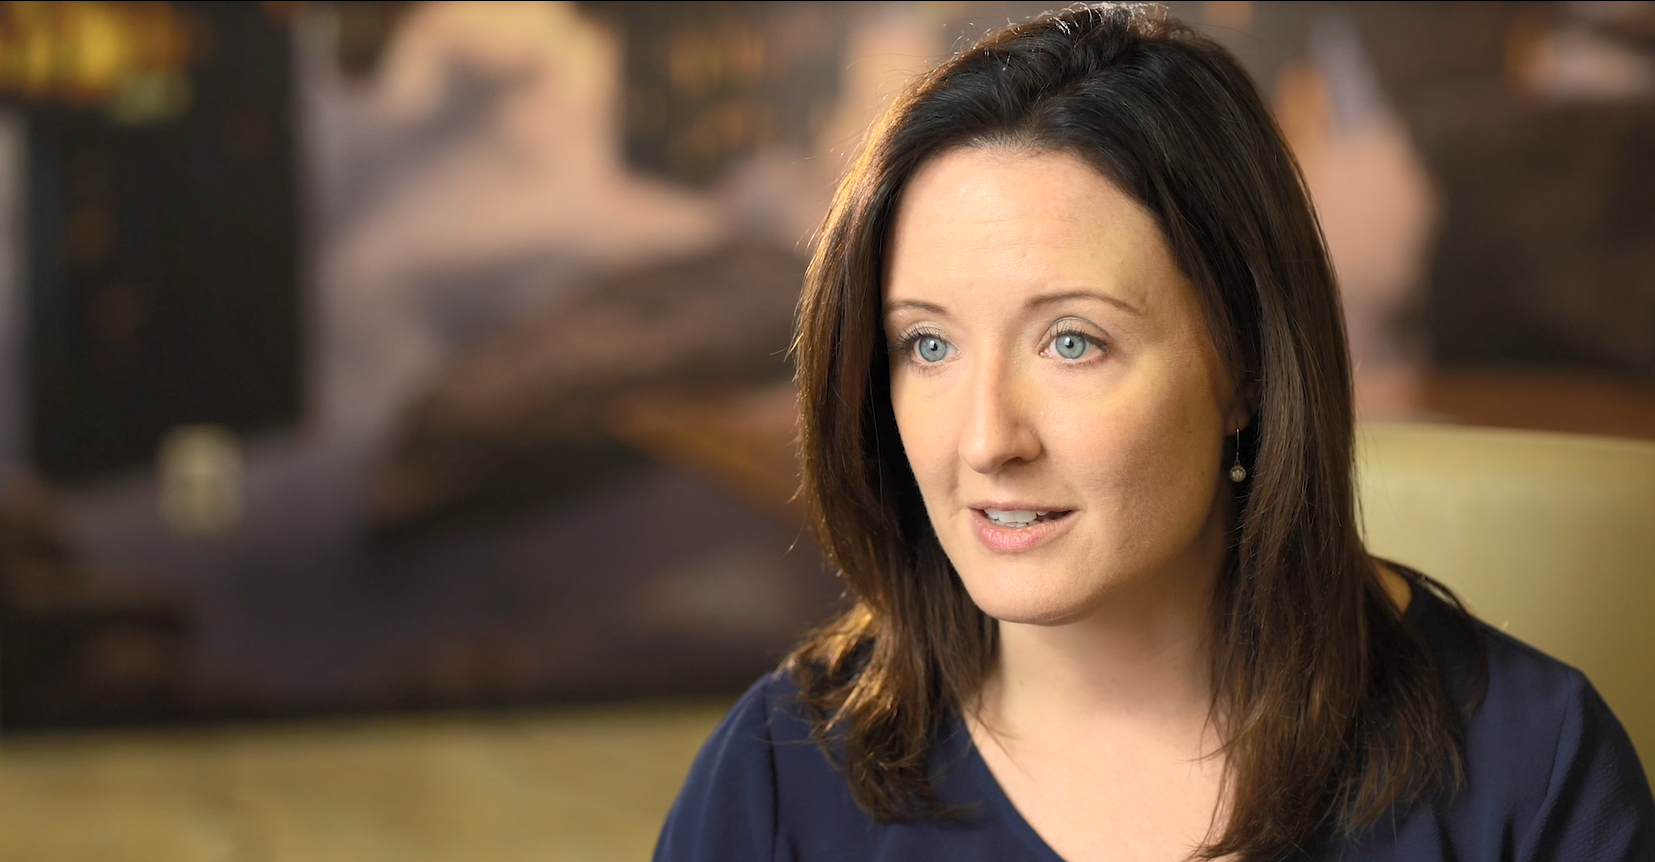 Amplify Chief Experience Officer Stacy Armijo discusses her leadership role in the credit union space.